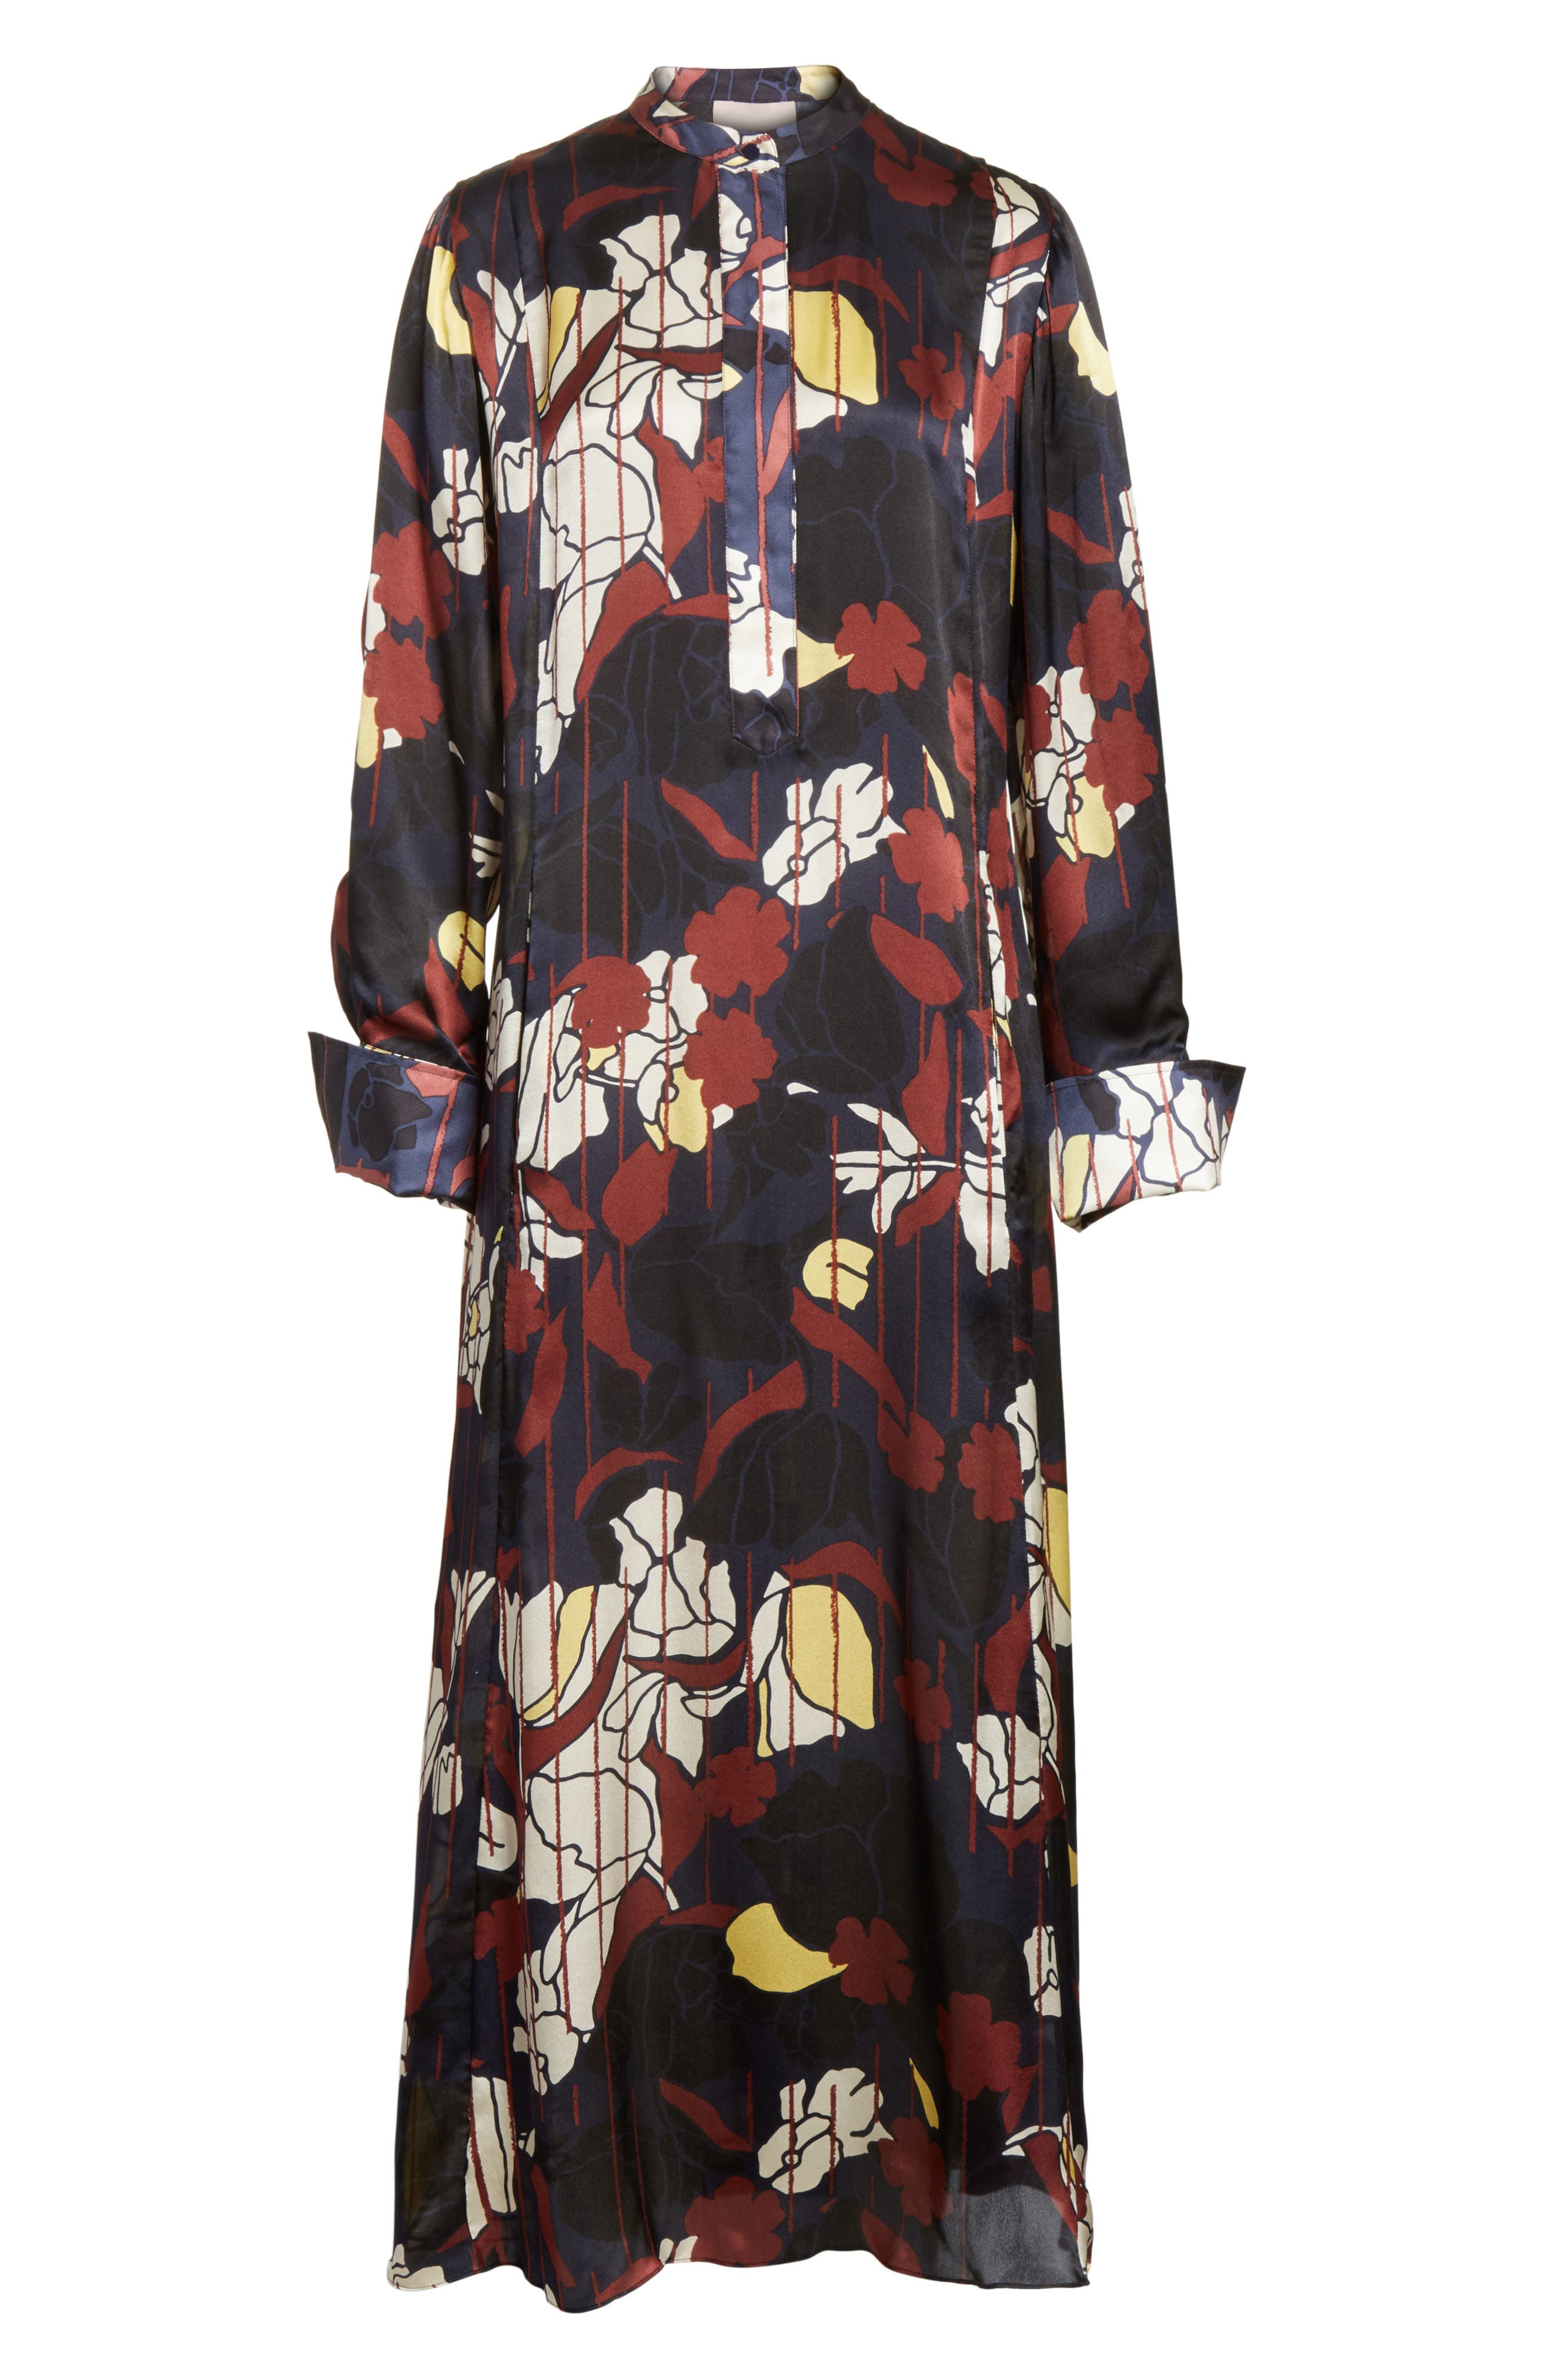 Anwyn Floral Silk Dress,                             Alternate thumbnail 8, color,                             French Blue Floral Print